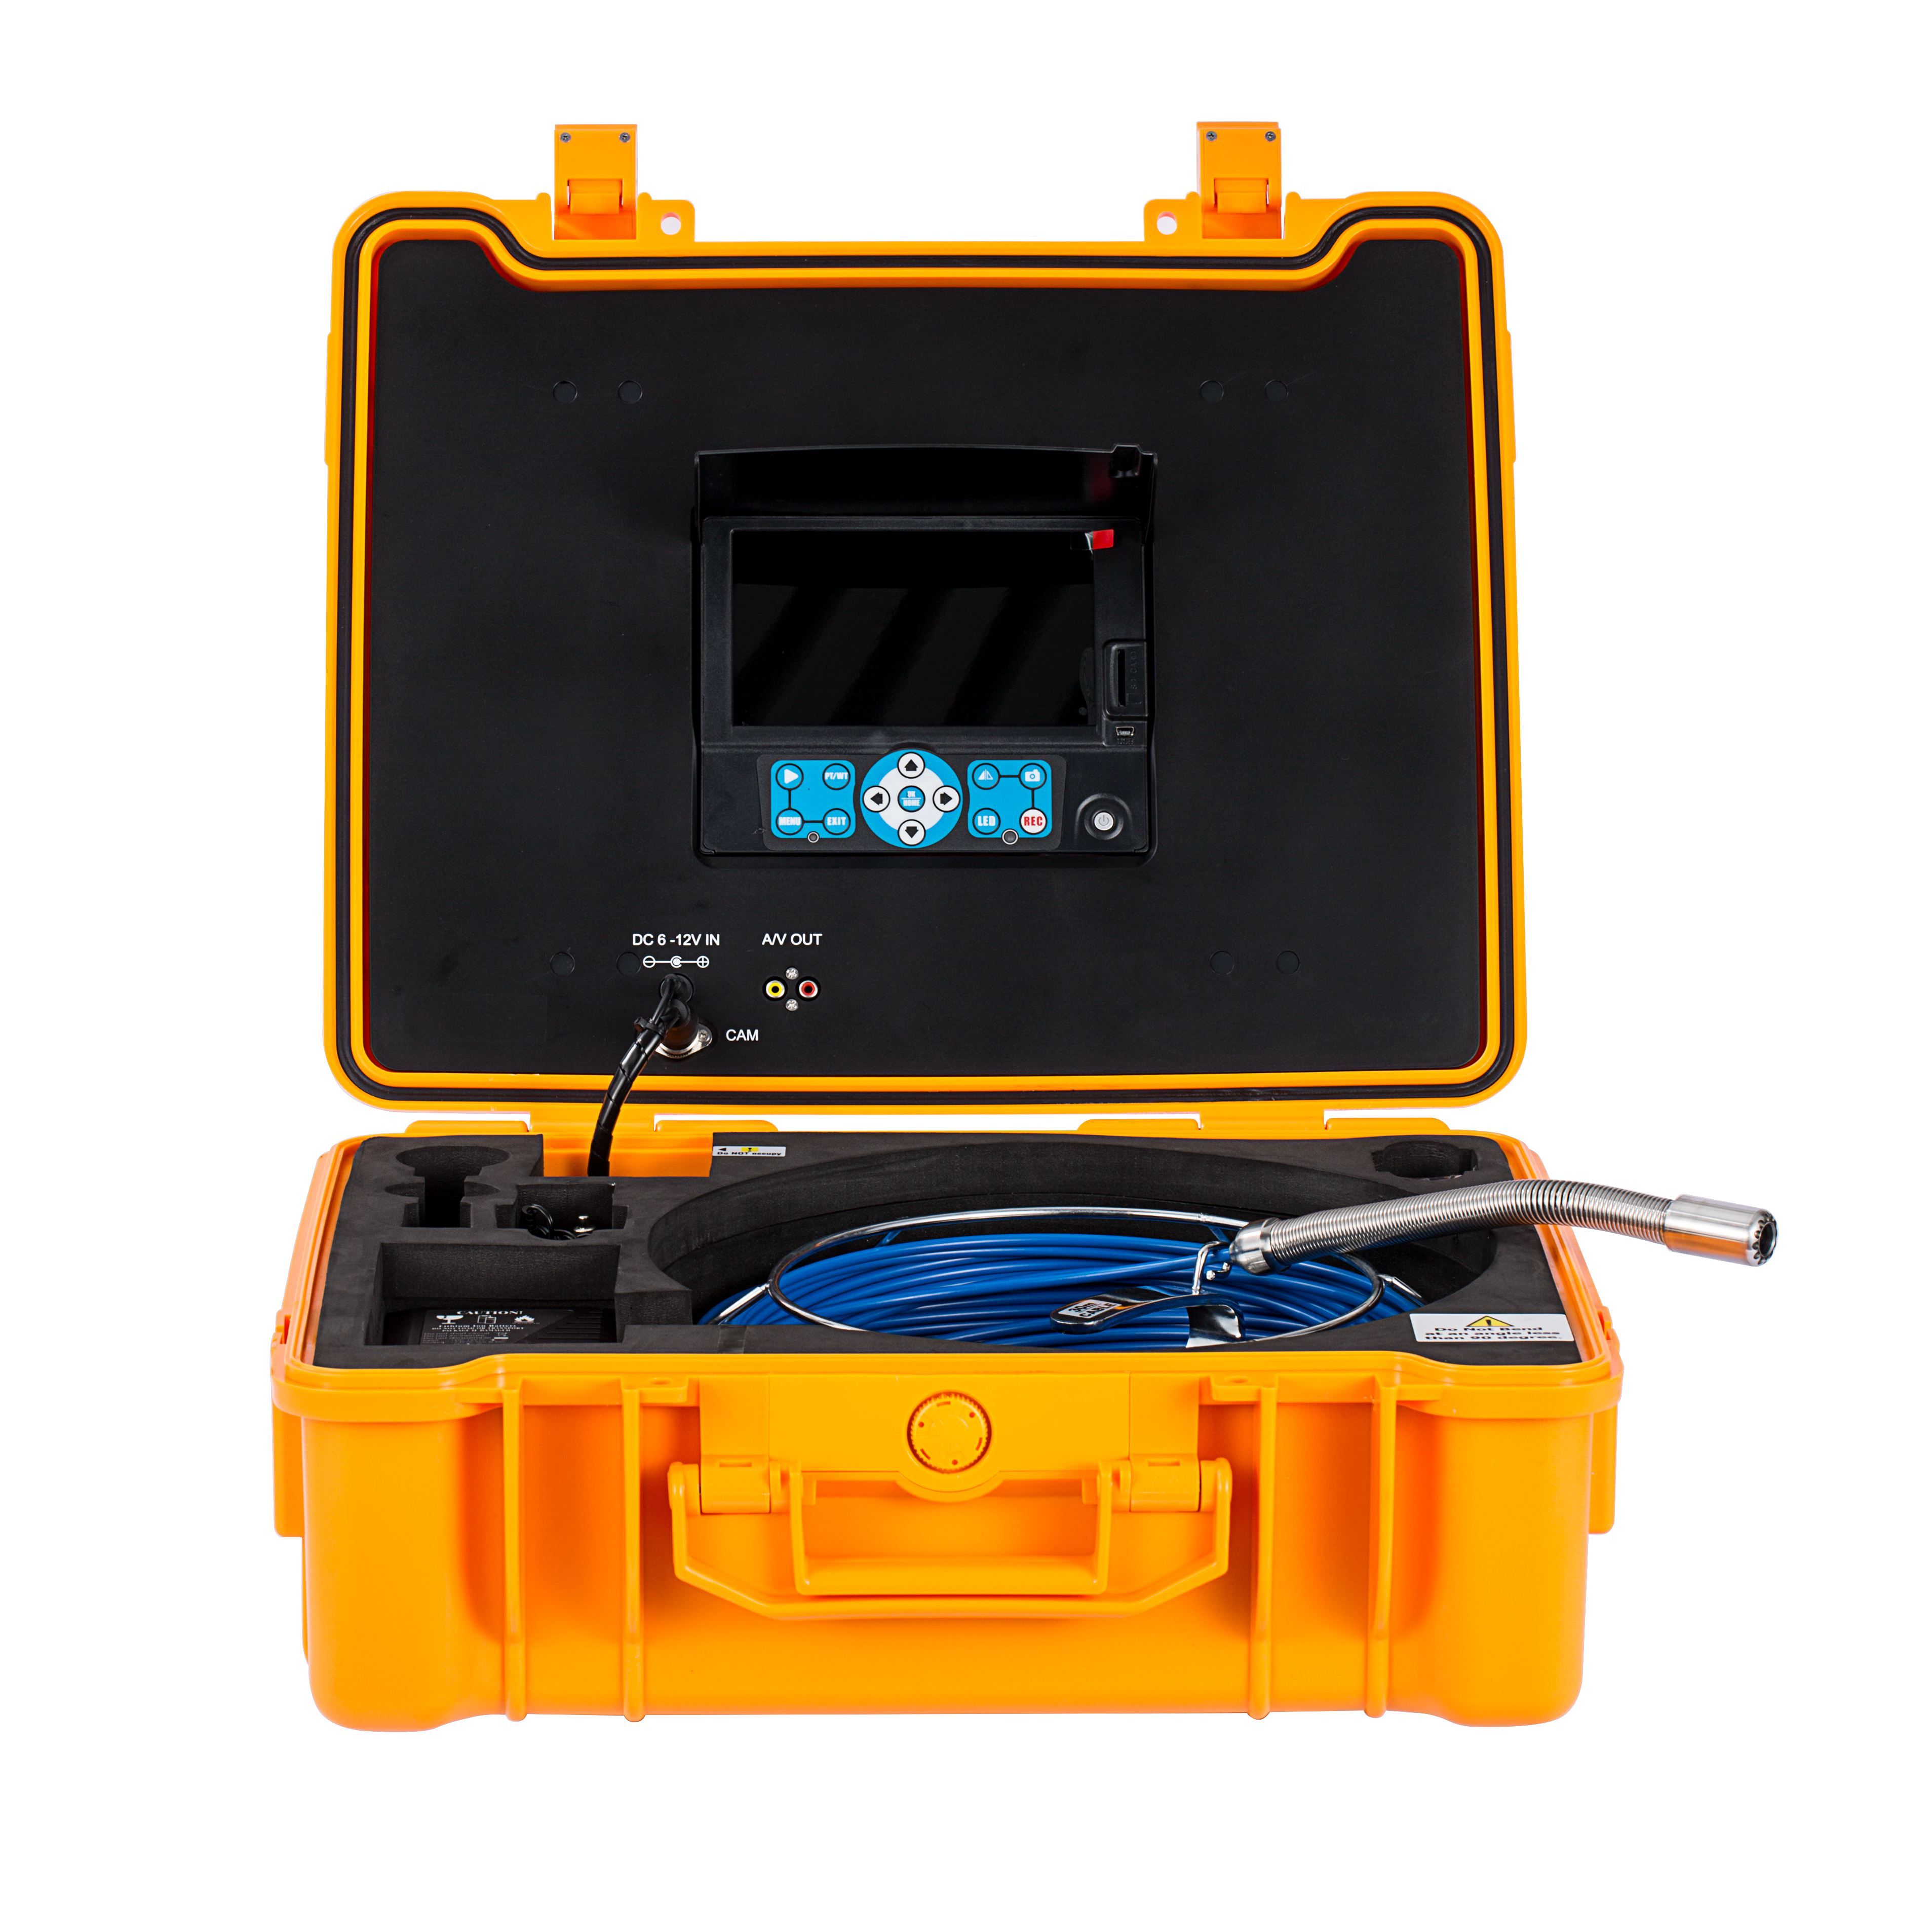 Plumbing Service equipment with 20-40m push cable sewer inspection camera